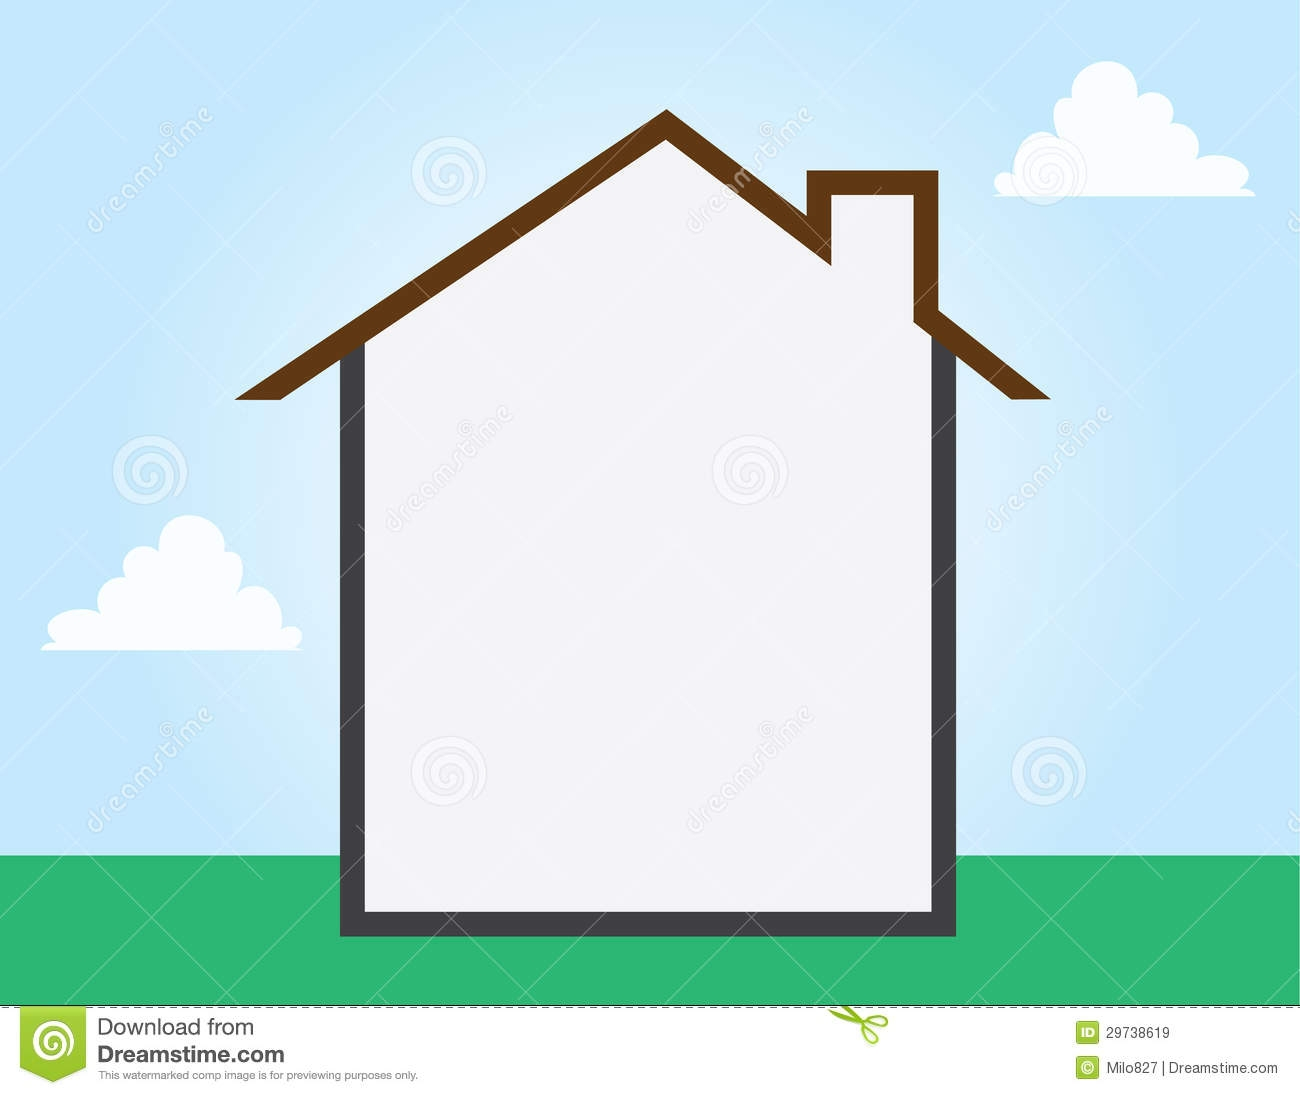 Similiar Blank House Diagram Keywords.